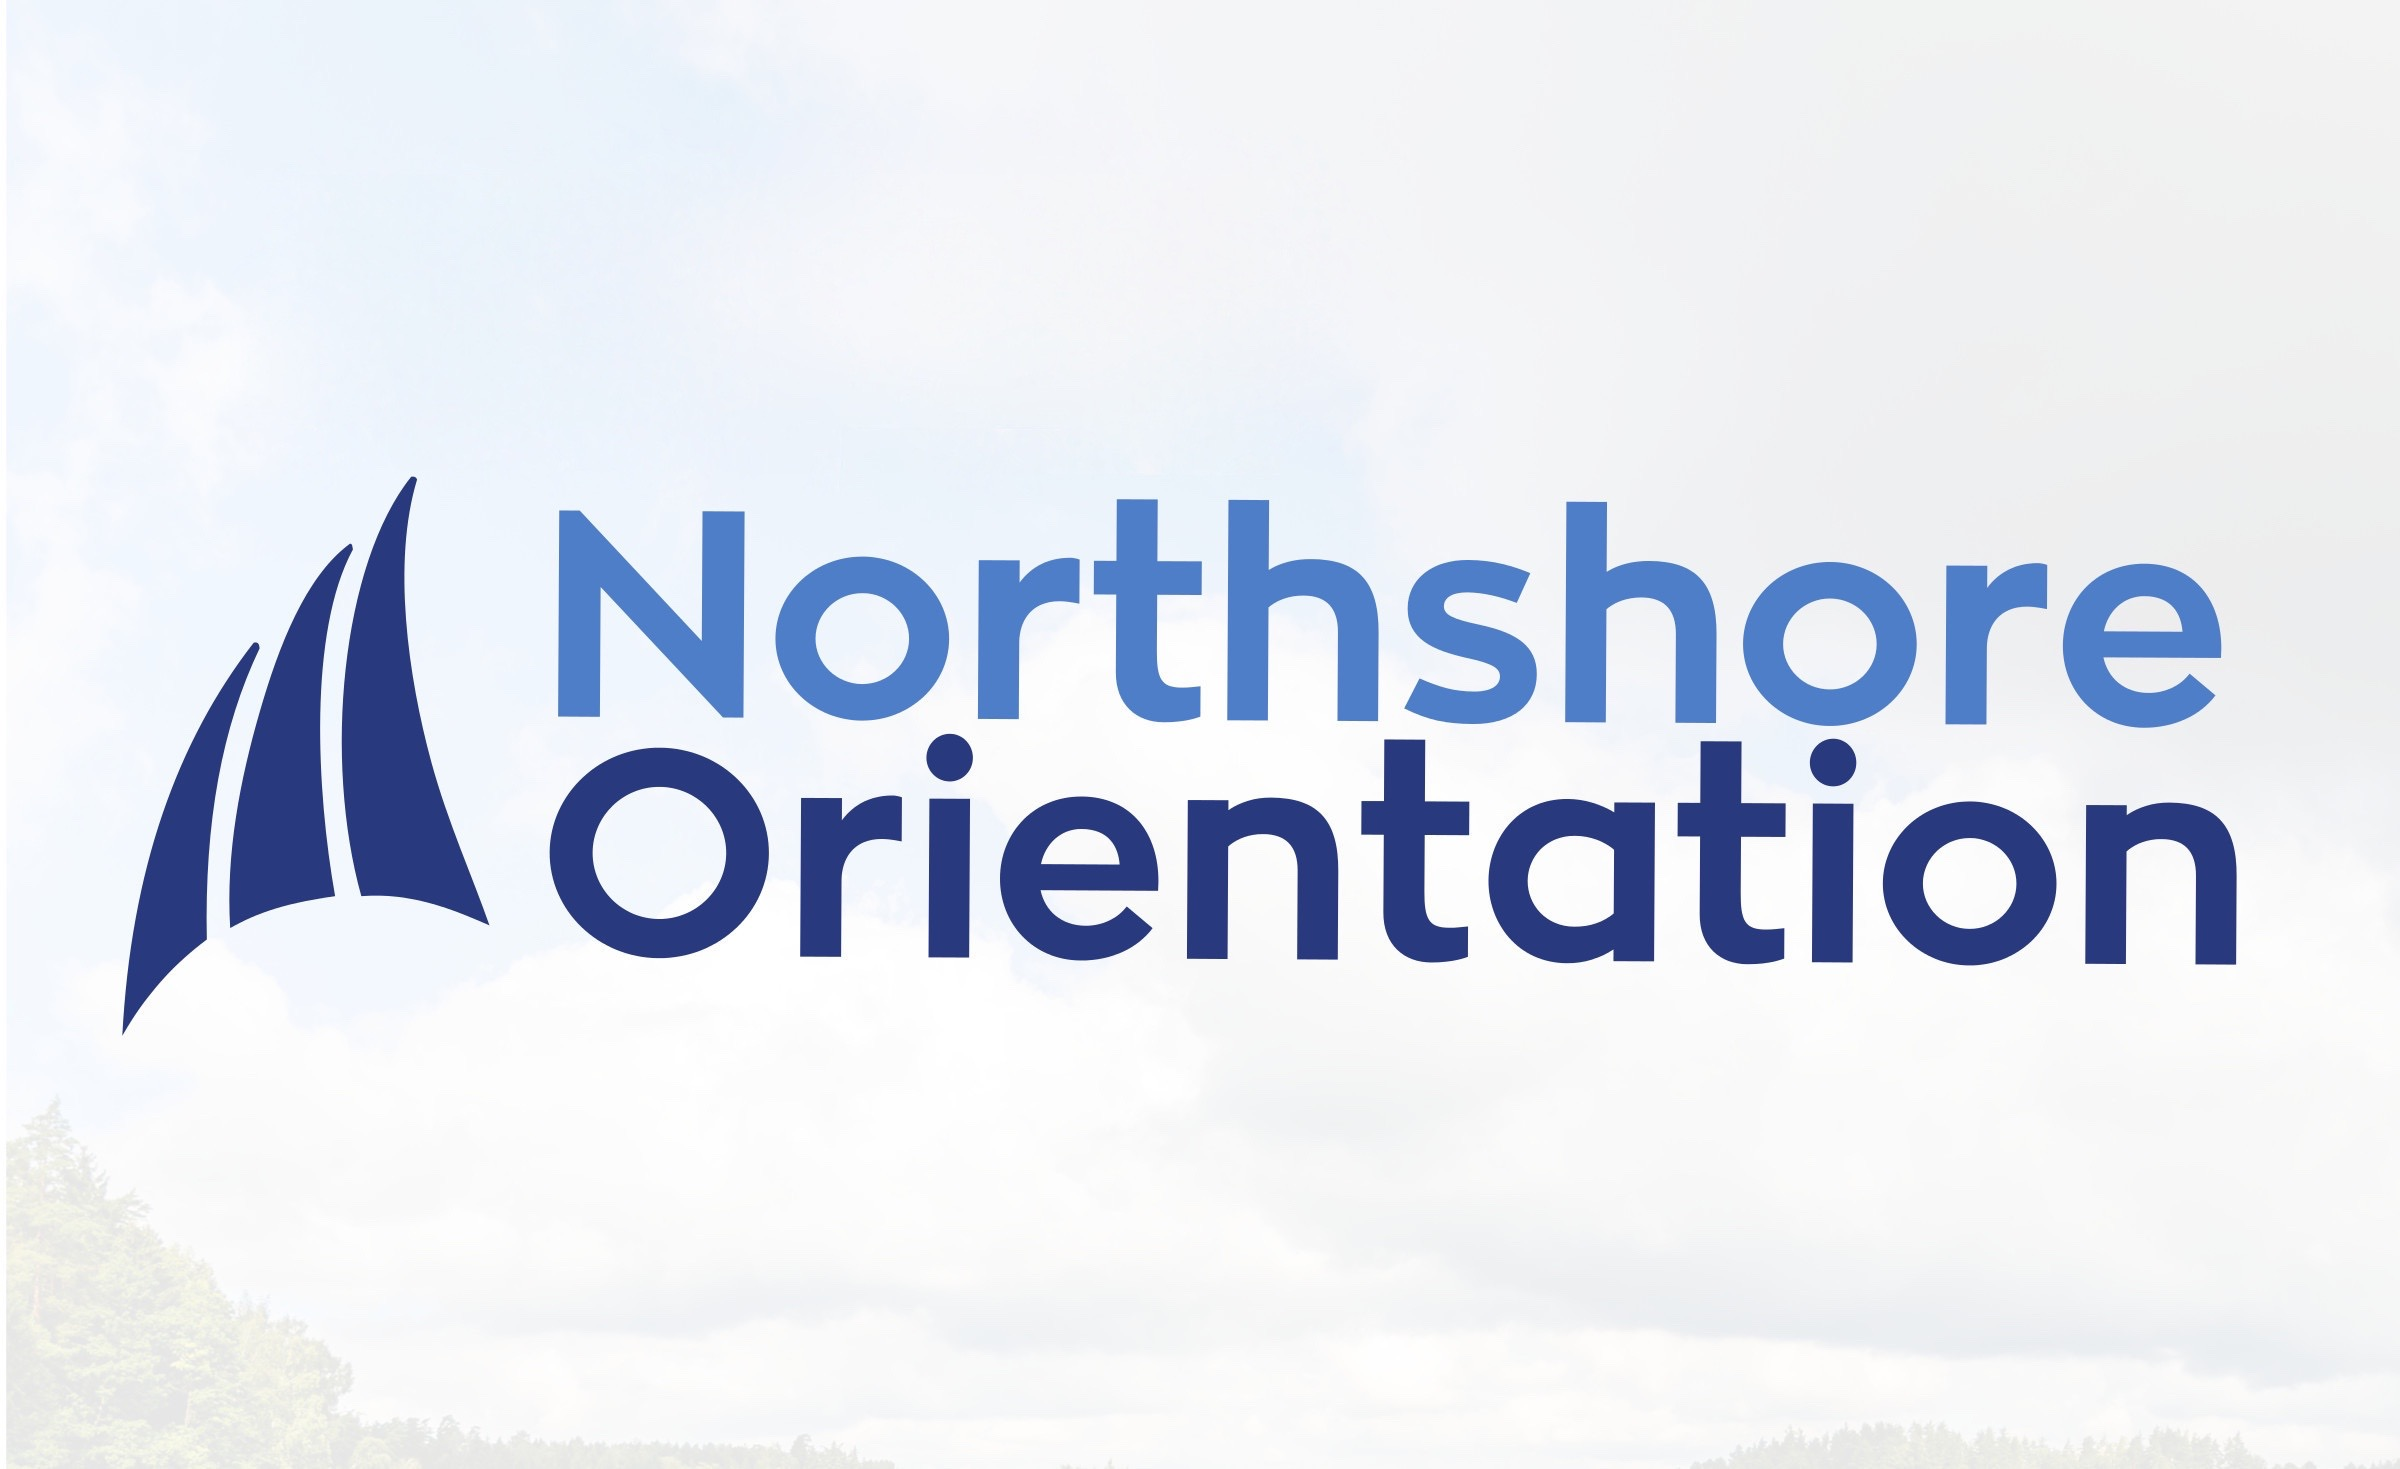 Northshore orientation graphic